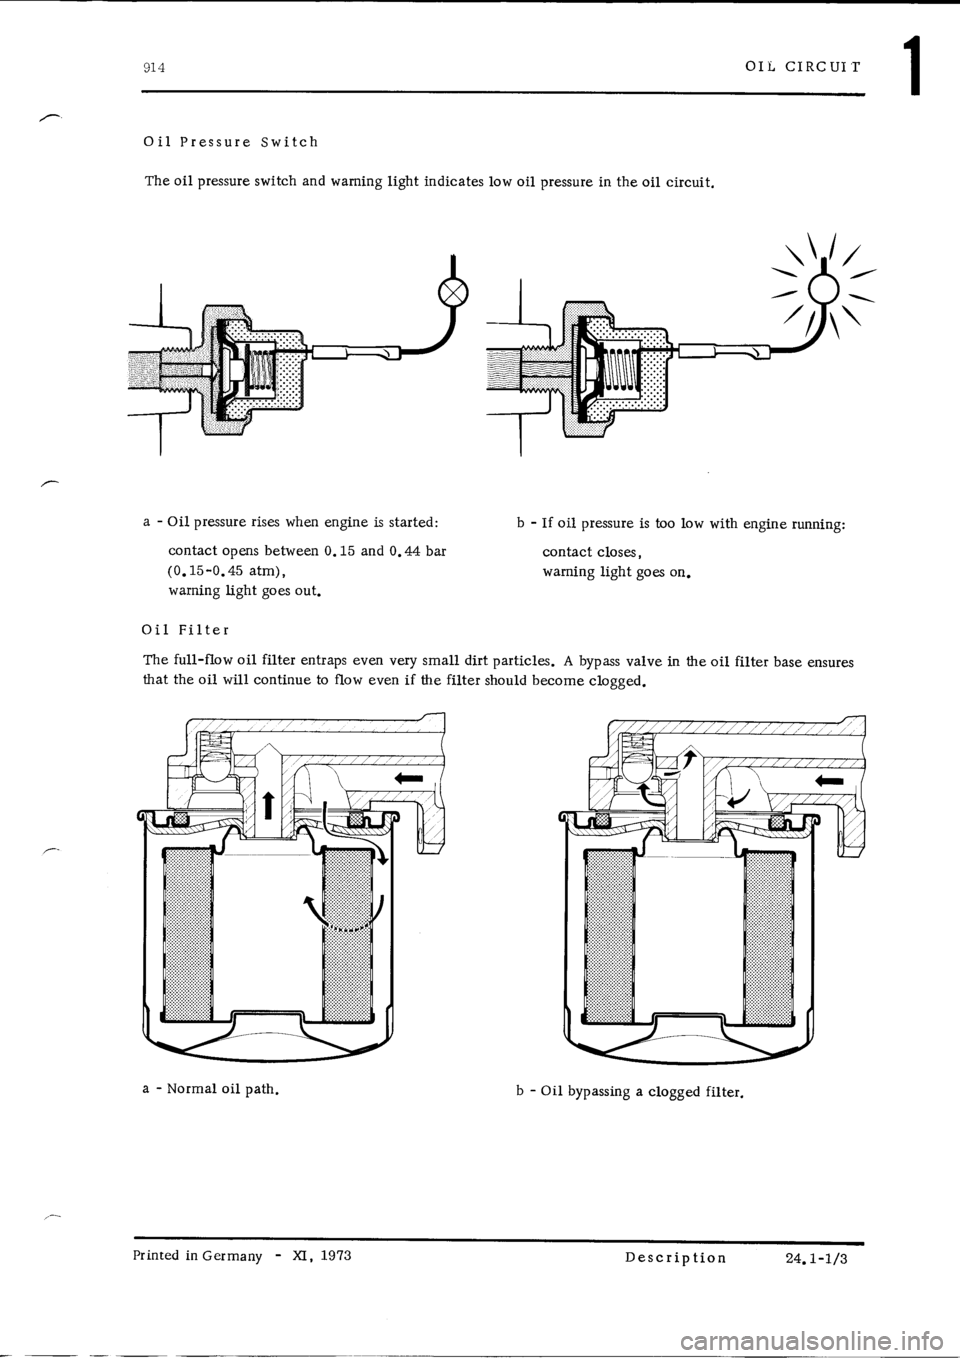 PORSCHE 914 1973 1.G Engine 4 Workshop Manual, Page 8